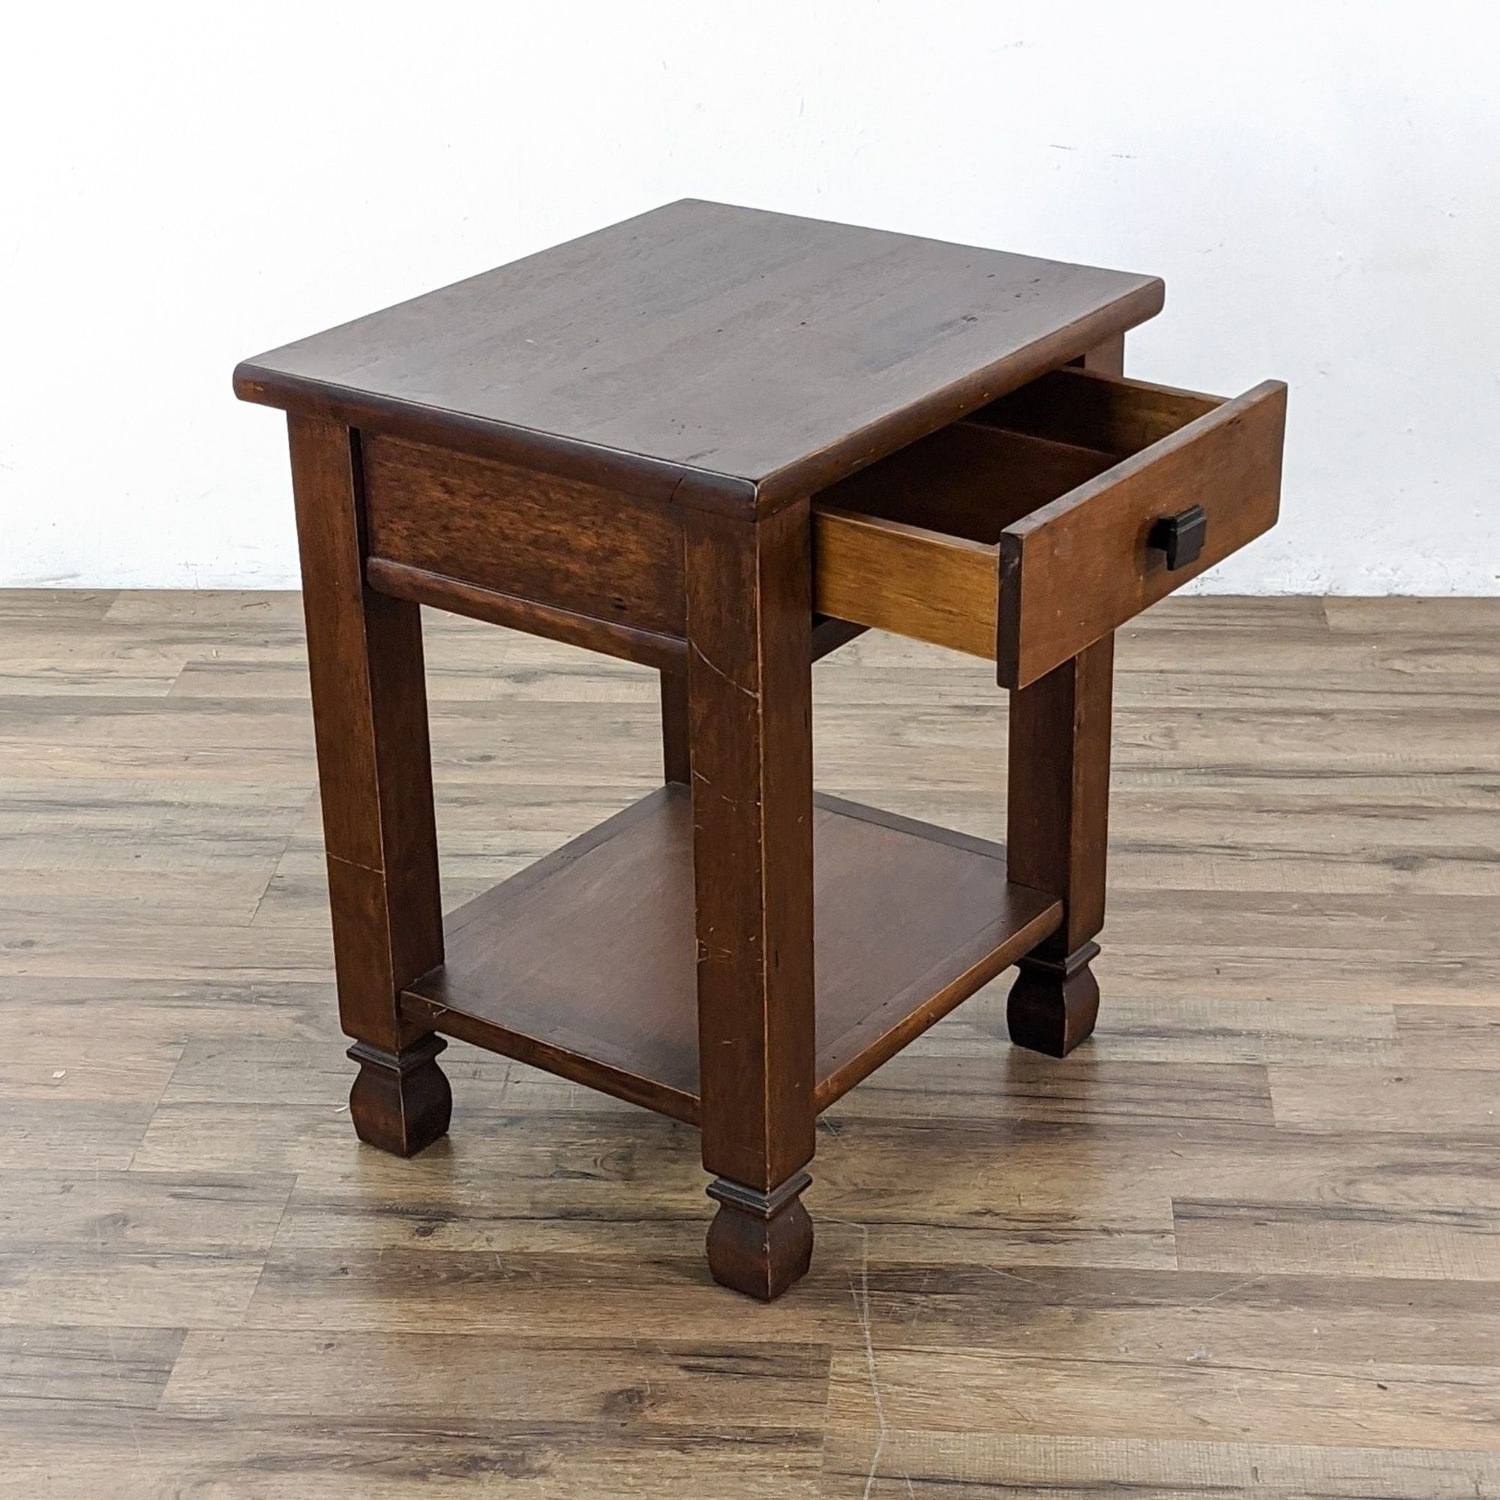 Pair of Pottery Barn Nightstands - image-1